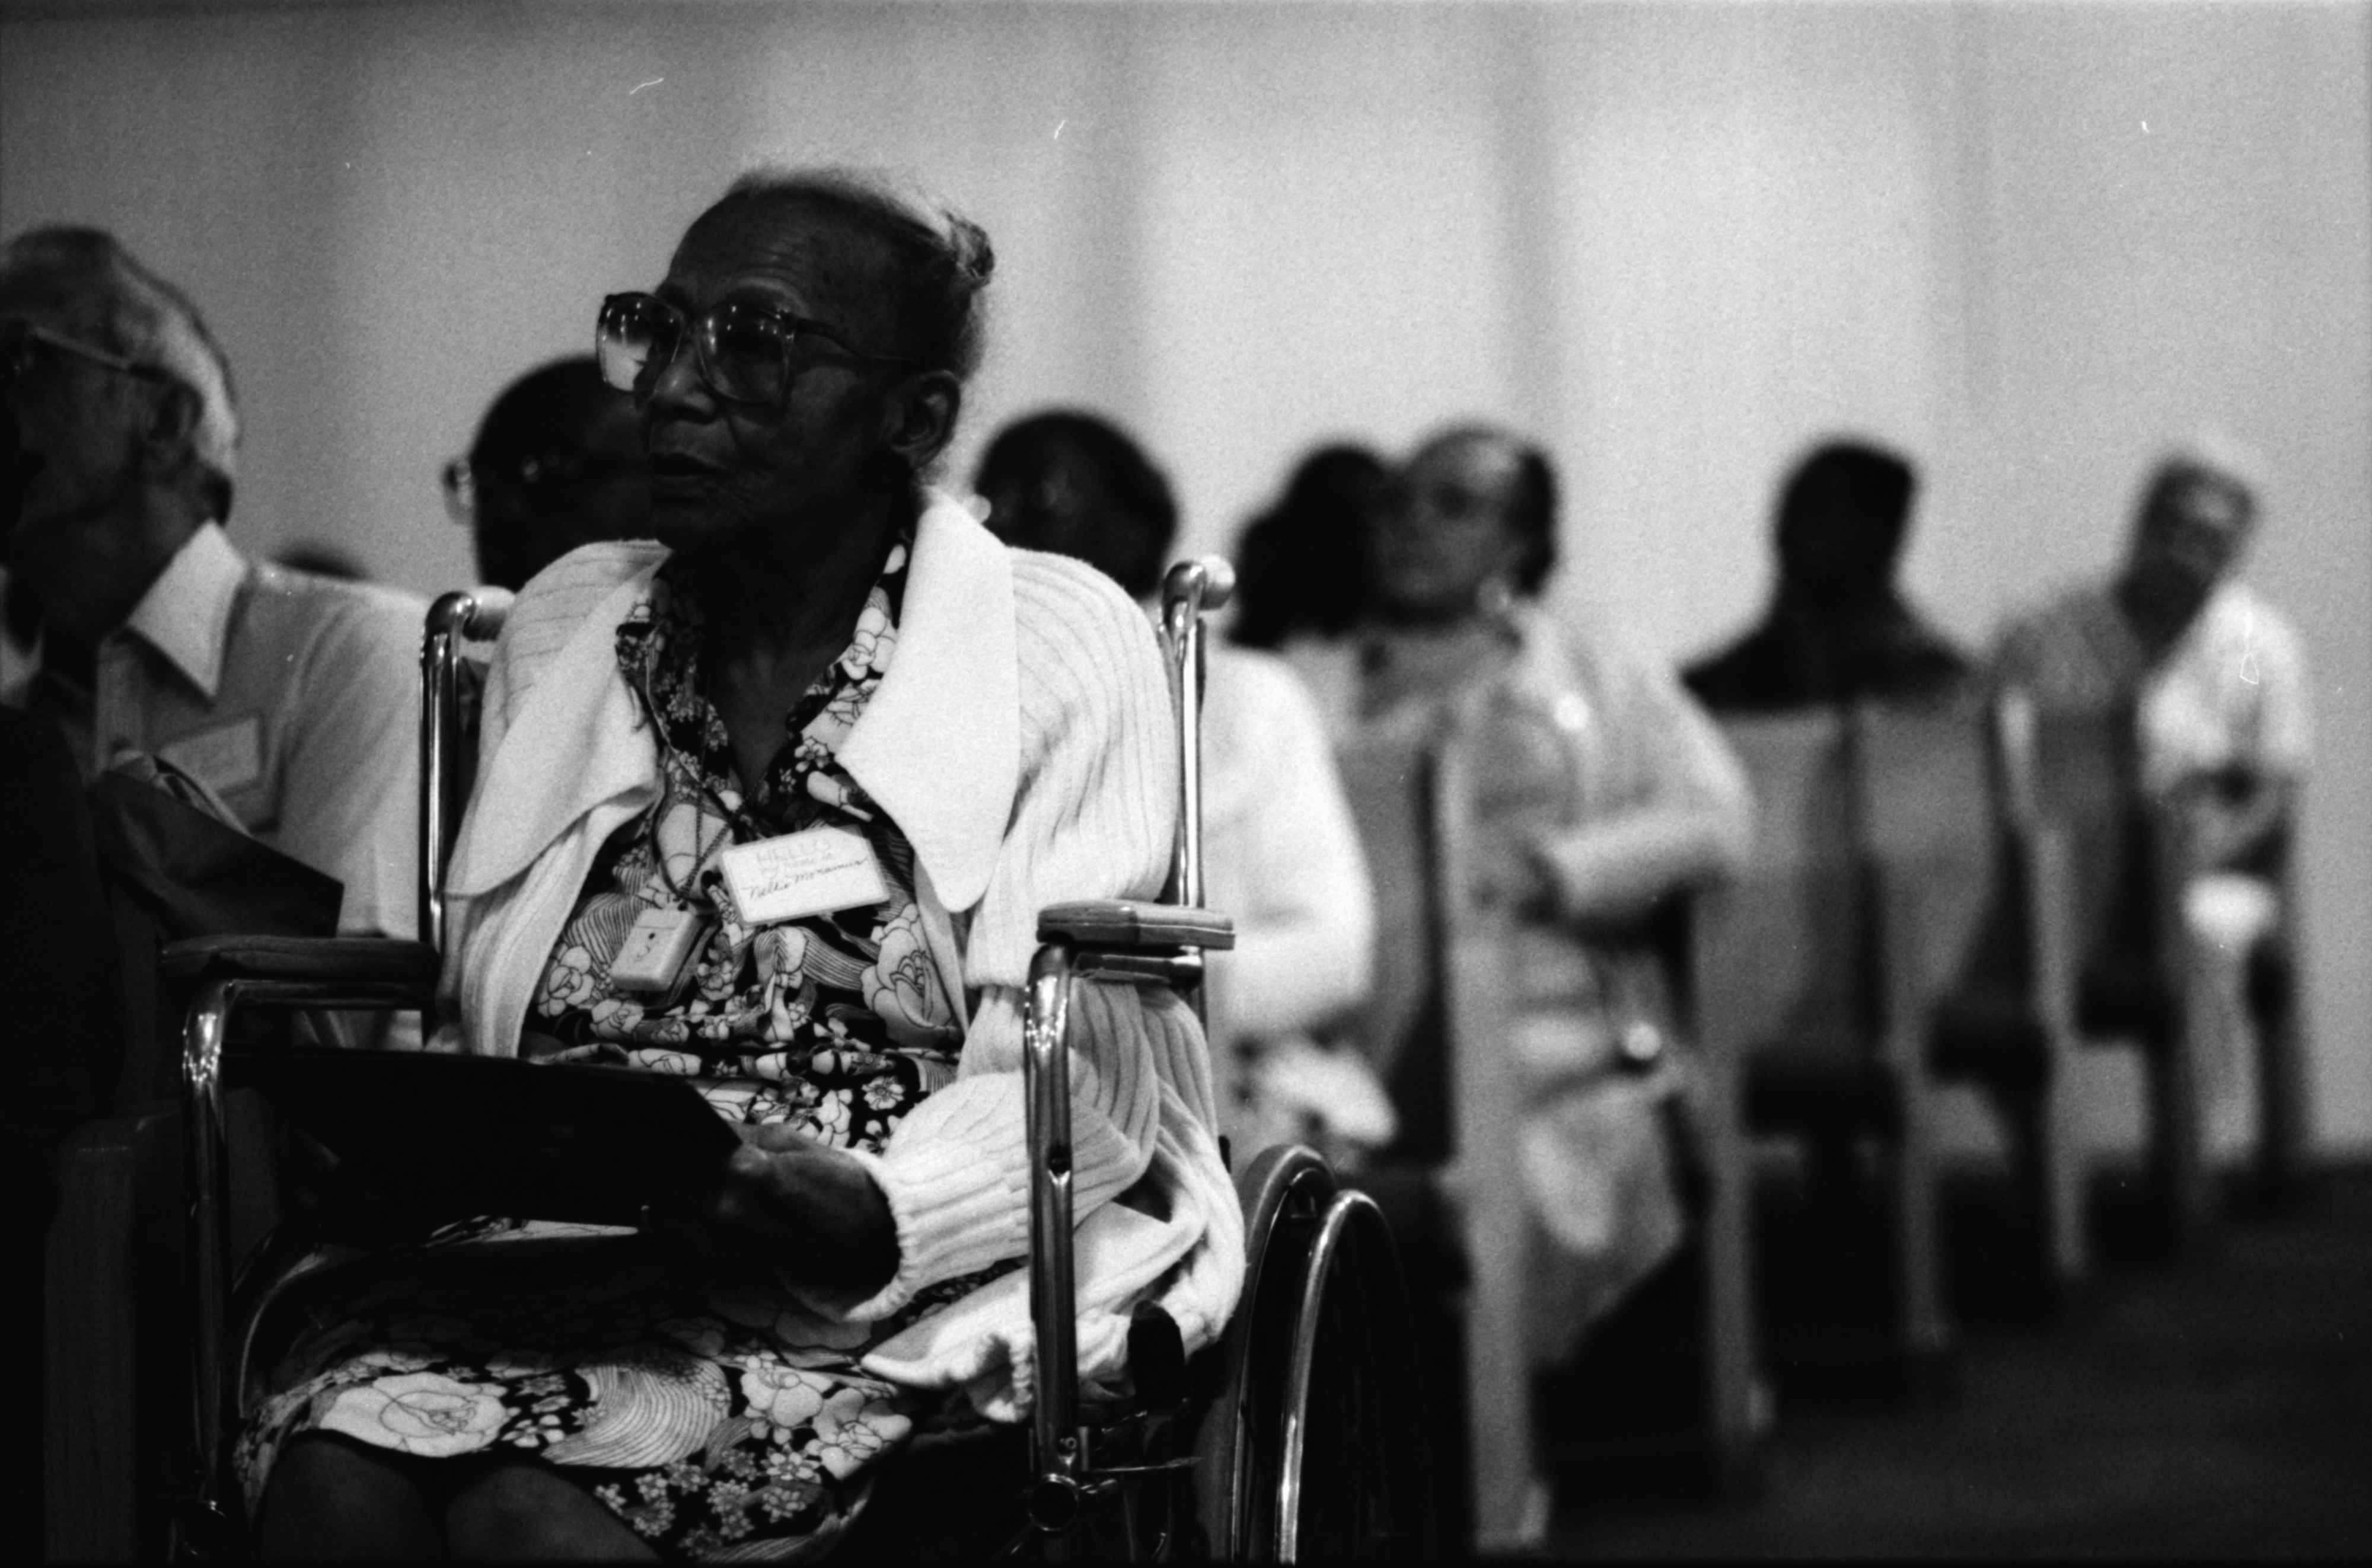 Nellie Monamus Attends Homeowners Workshop for Senior Citizens at Bethel AME Church, August 1989 image